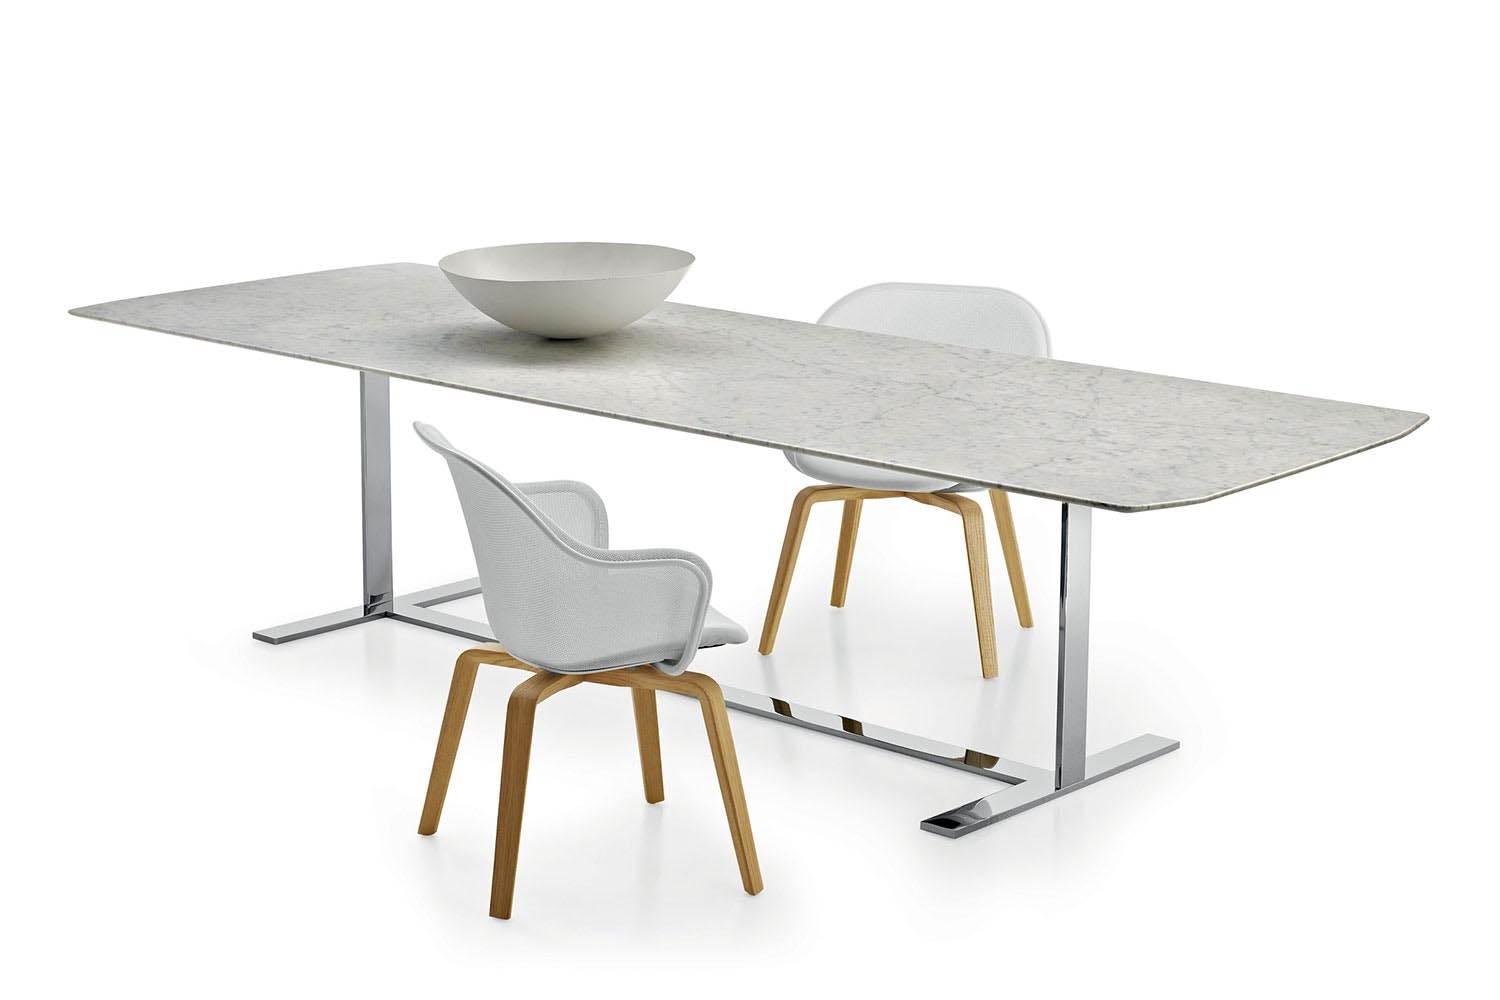 Eileen Large Table by Antonio Citterio for B&B Italia